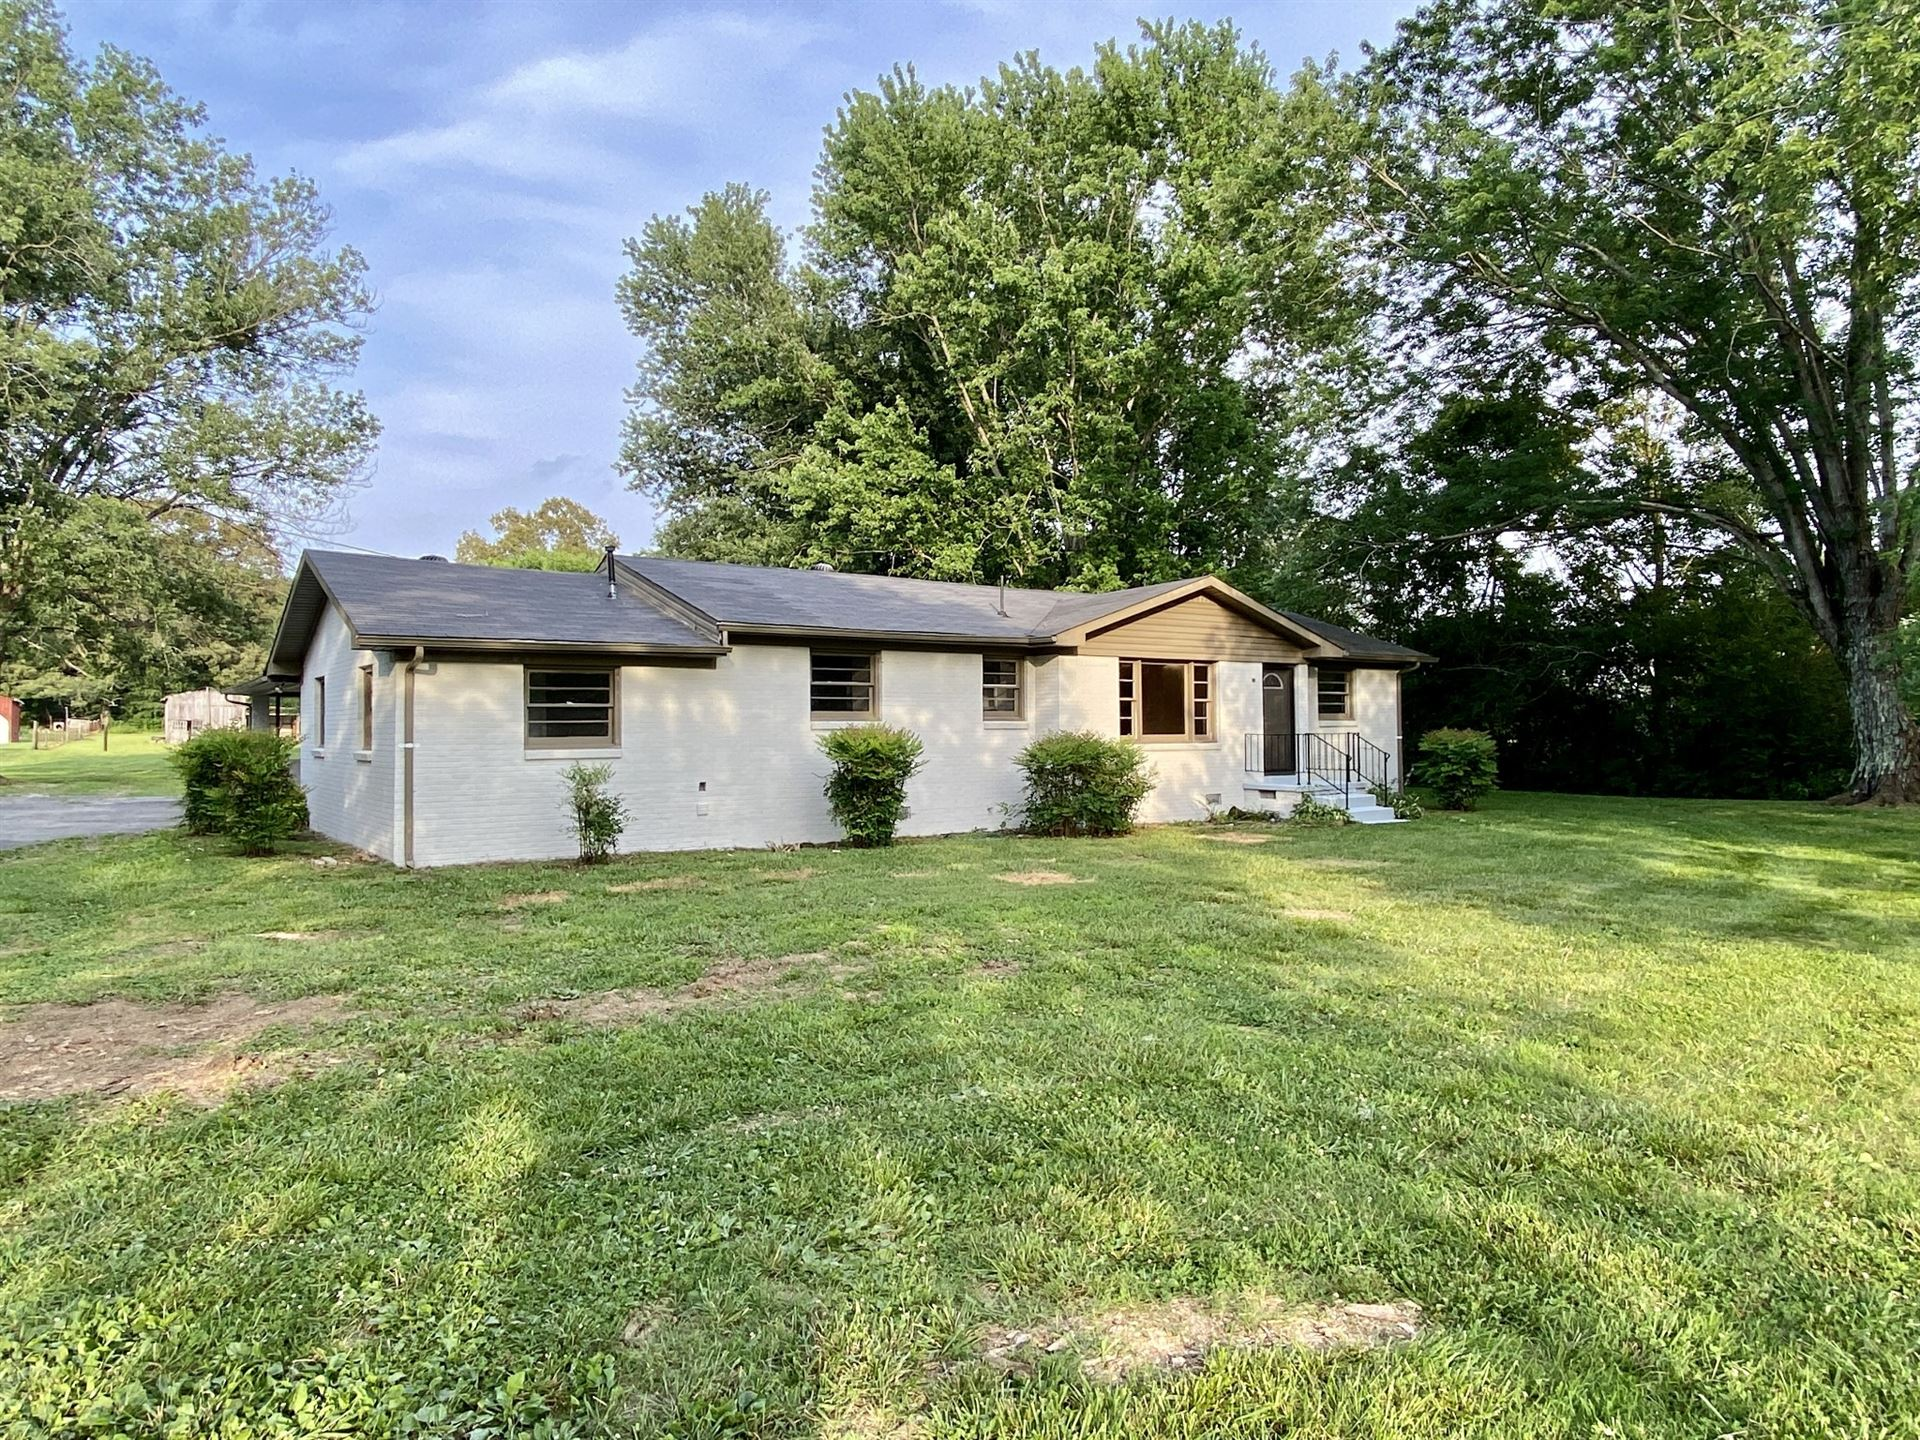 Photo of 3291 McMinnville Hwy, Smithville, TN 37166 (MLS # 2264478)